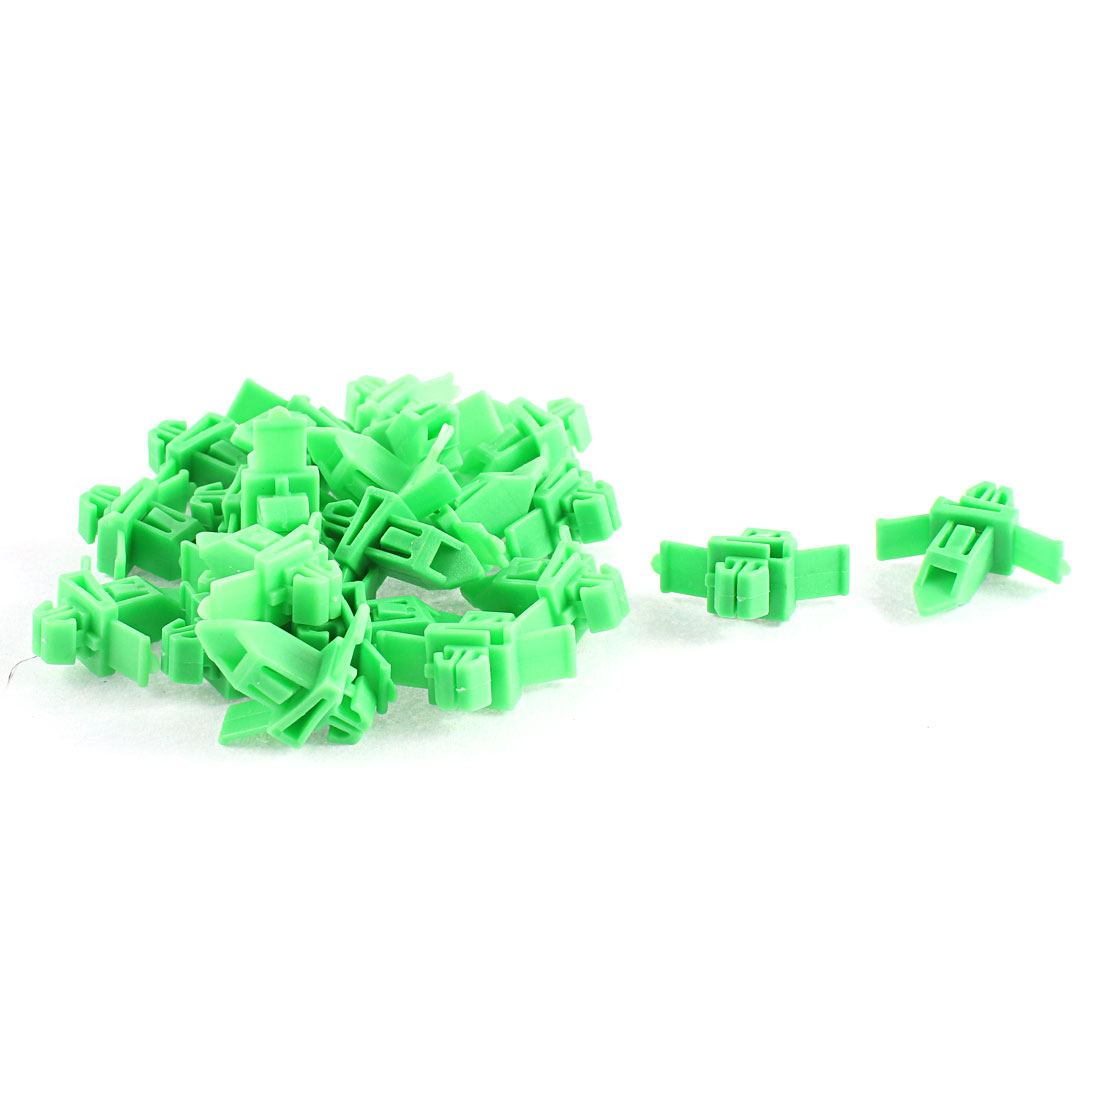 22Pcs Green Door Card Trim Moulding Plastic Retainer Clips 9 x 7mm Hole for Toyota